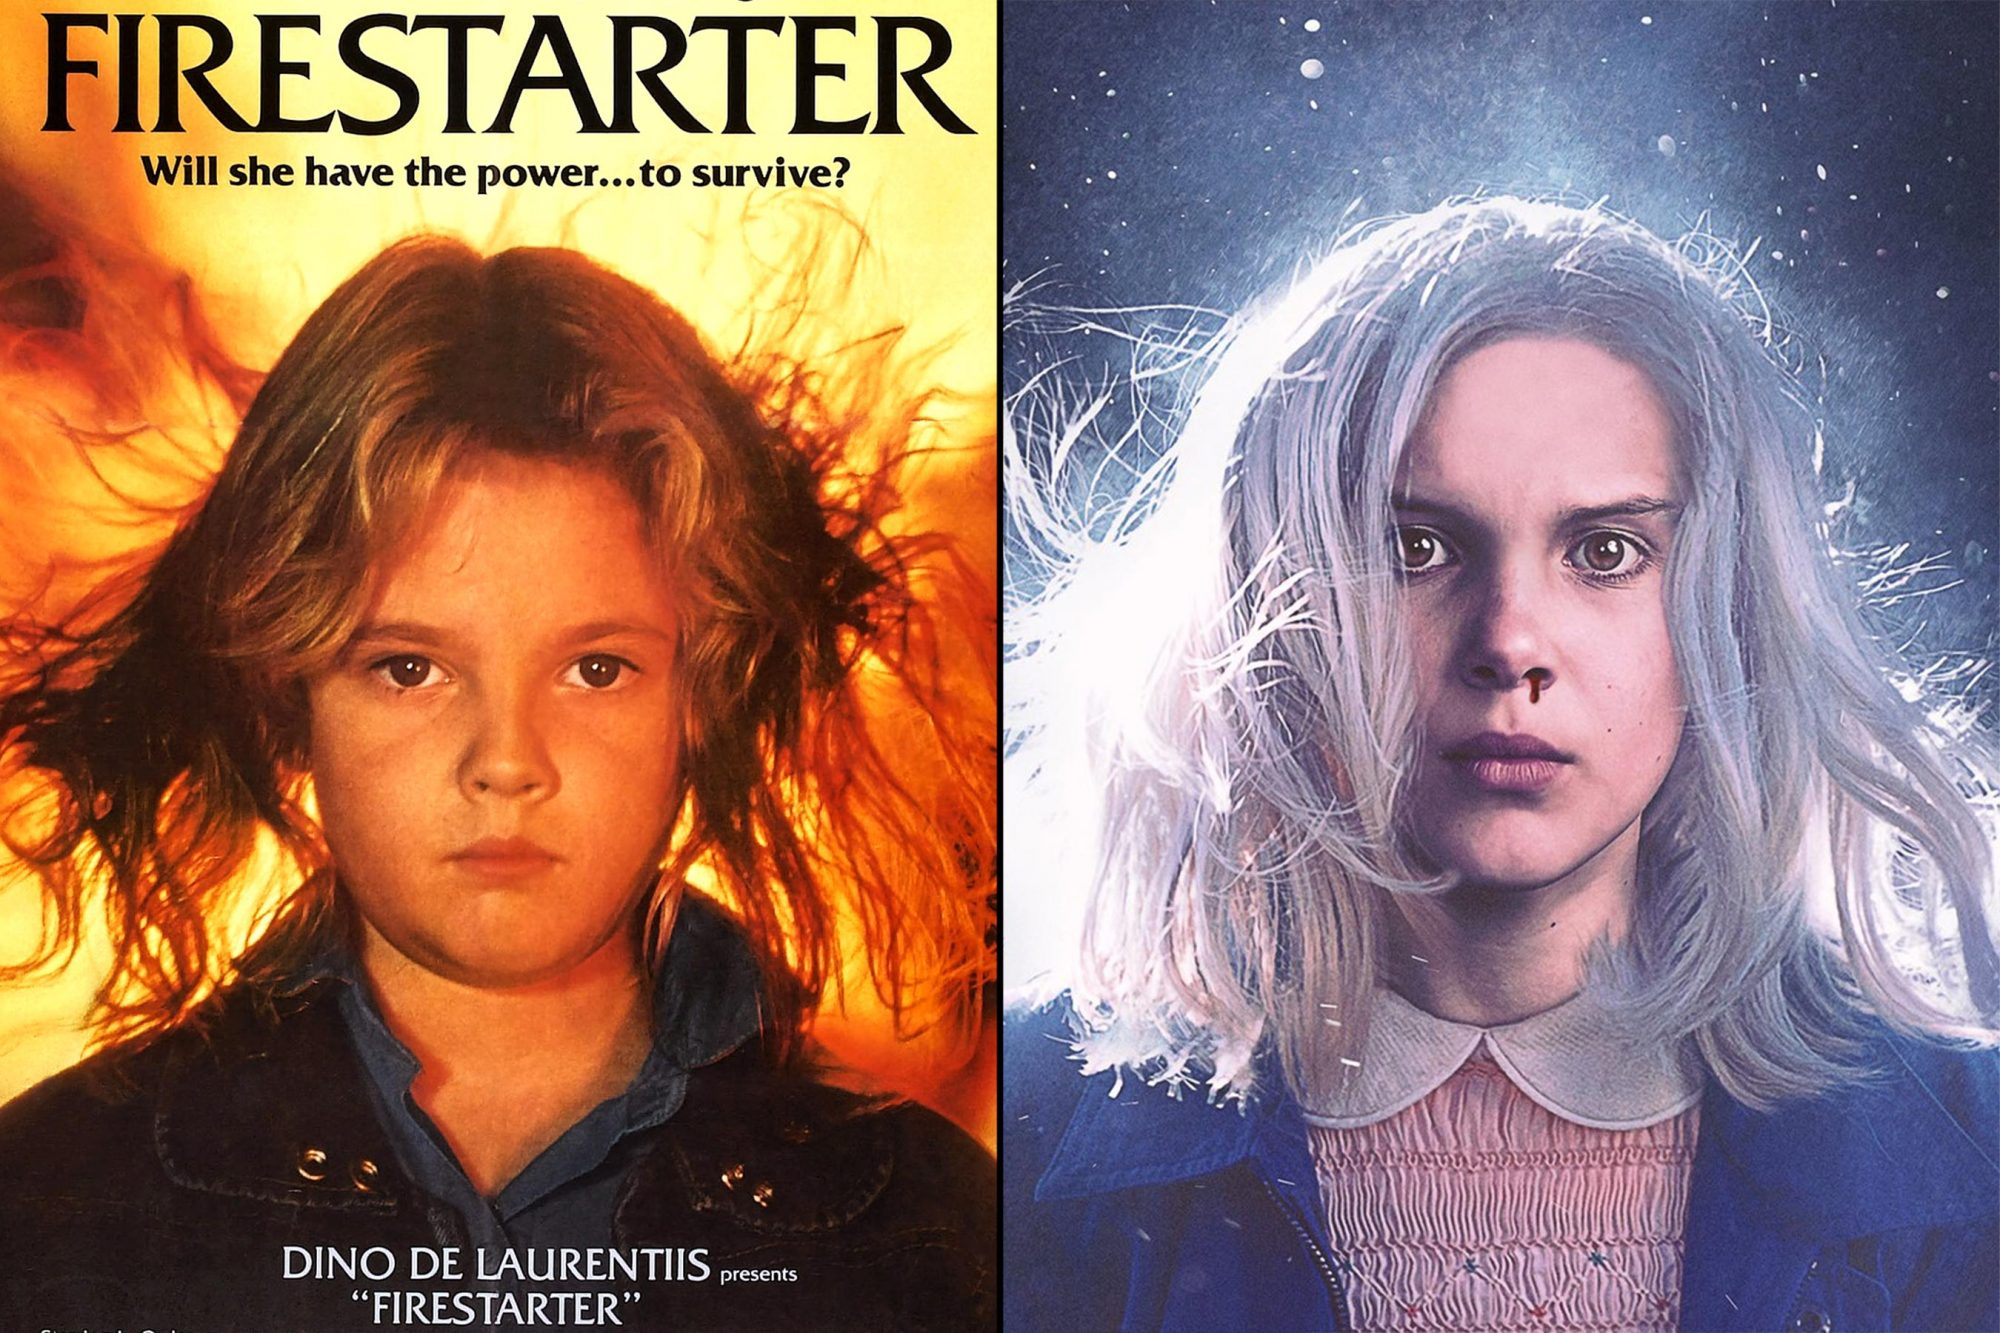 Stranger-Things-Firestarter-tout